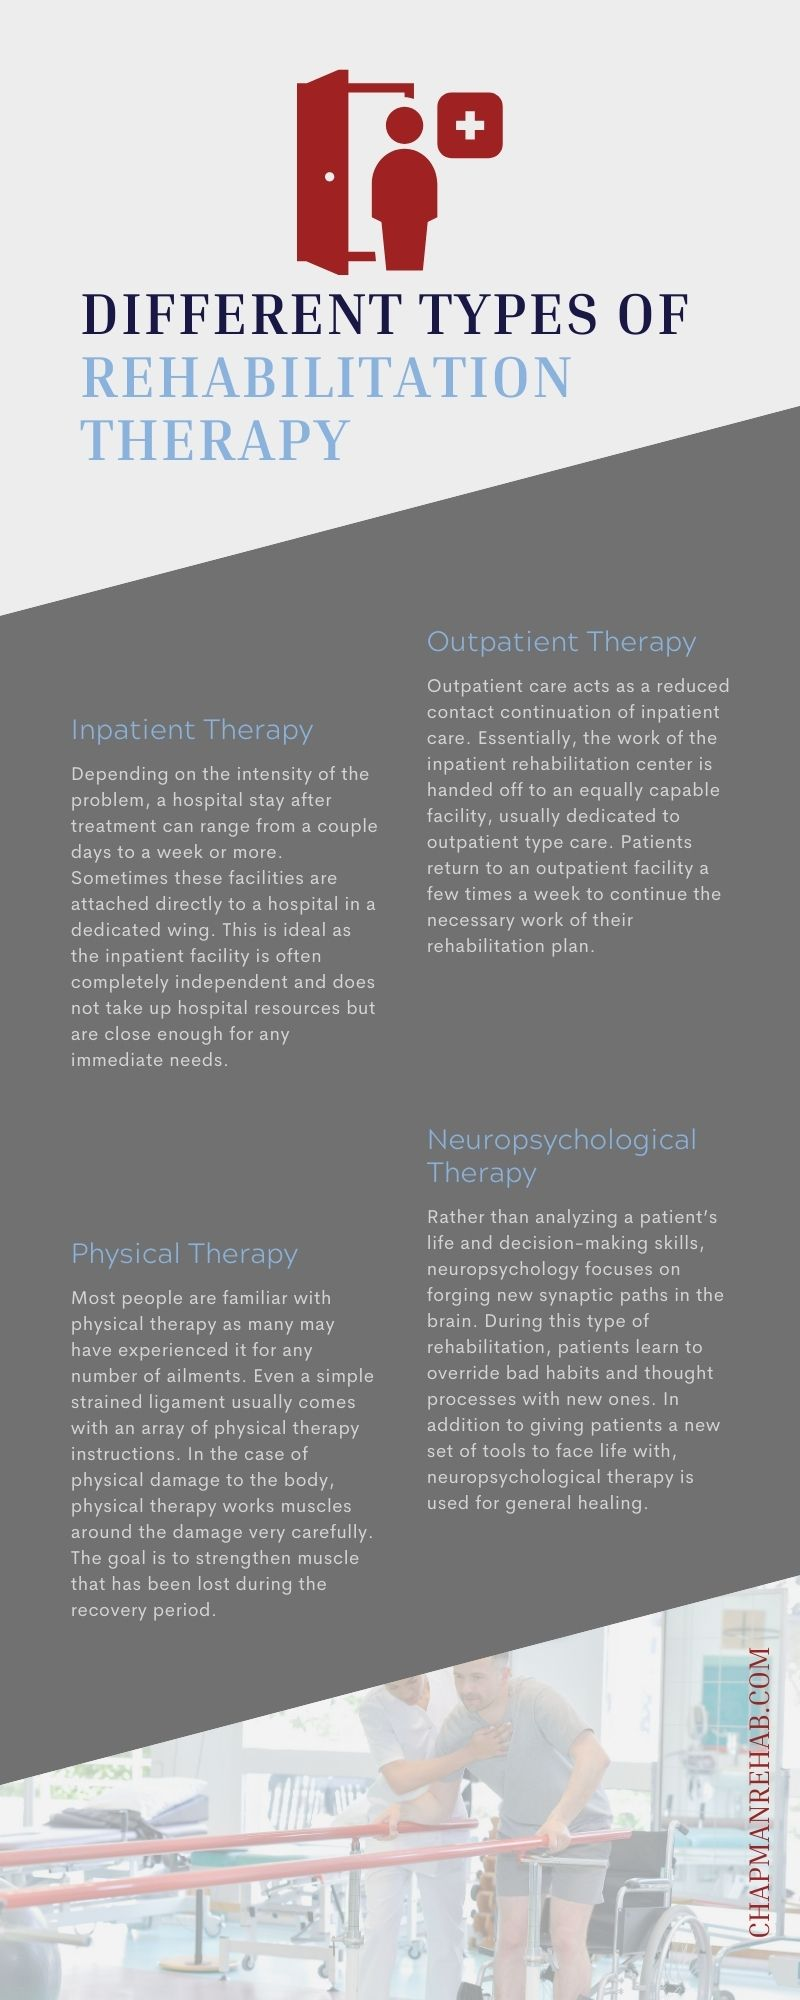 Different Types of Rehabilitation Therapy